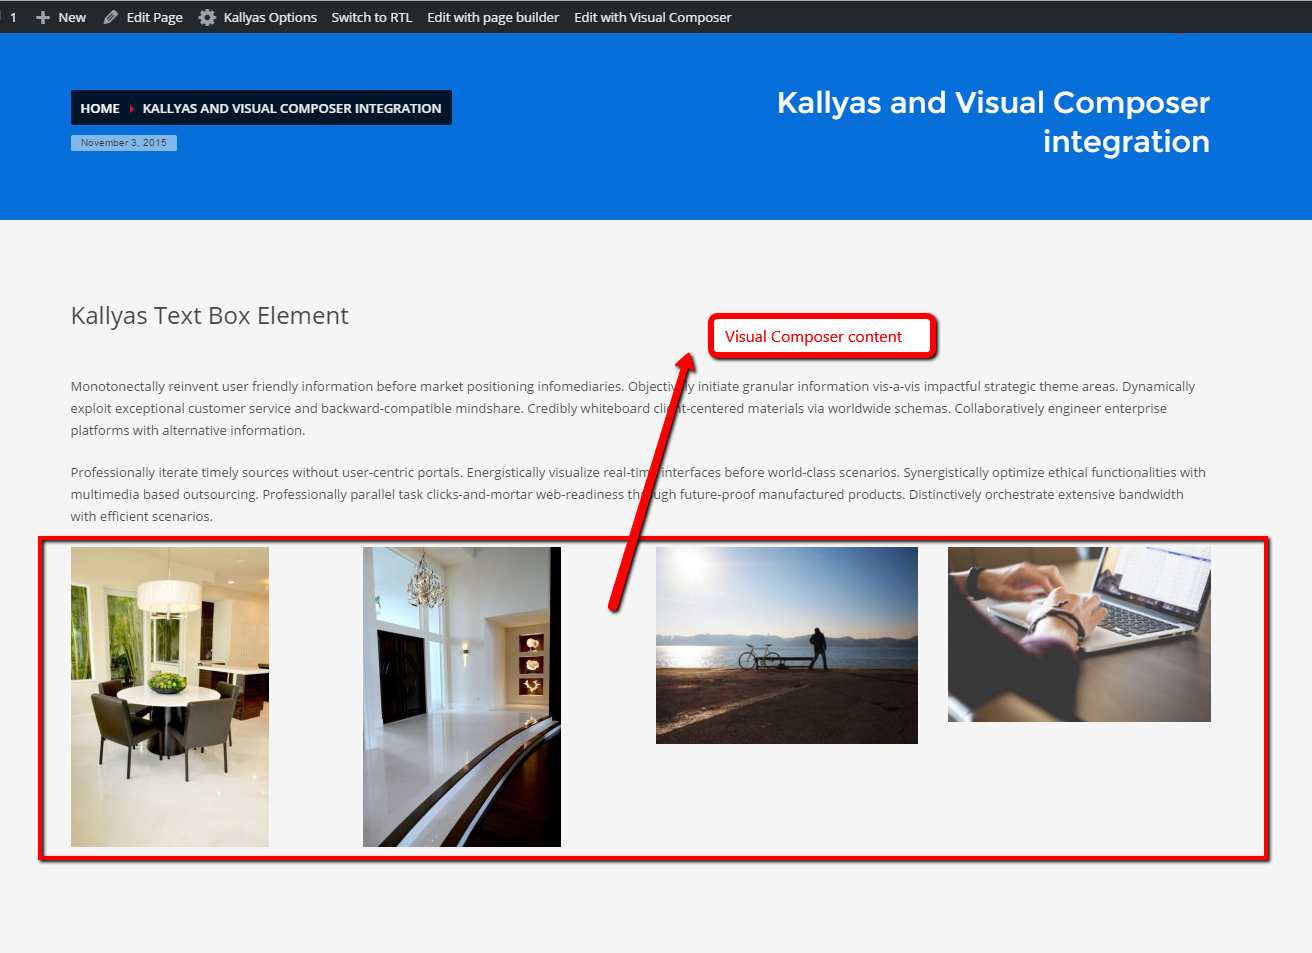 How to use Visual Composer with Kallyas - Hogash Studio Dashboard